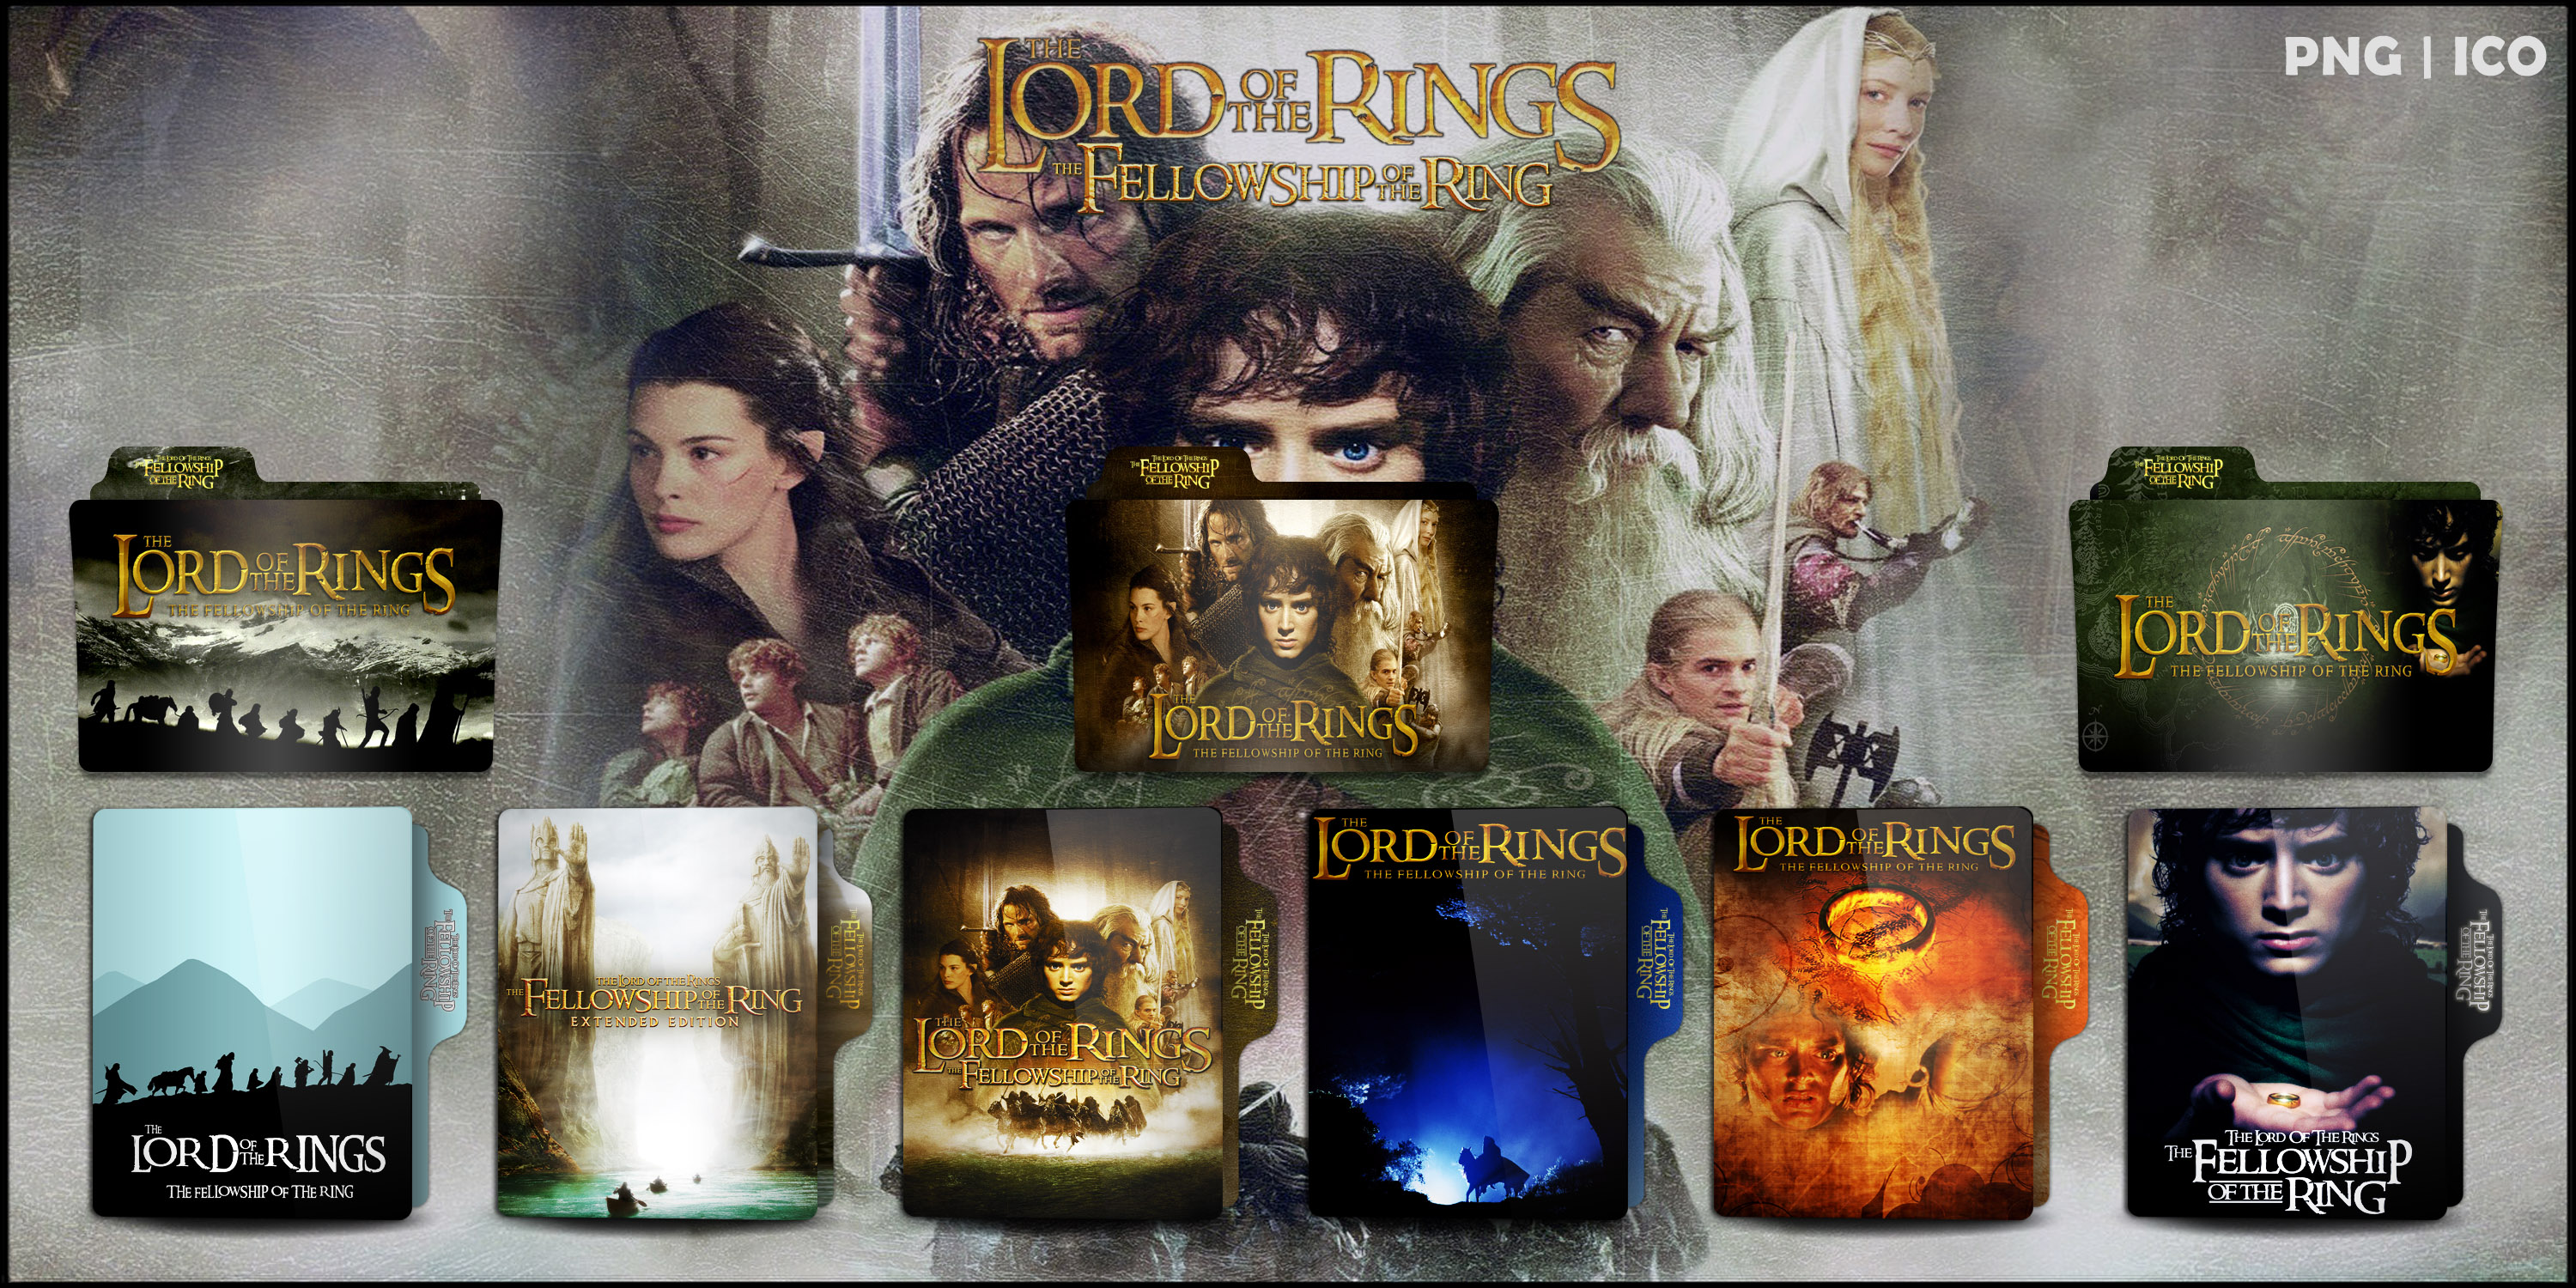 The Fellowship Of The Ring 2001 Folder Icon Pack By Omidh3ro On Deviantart